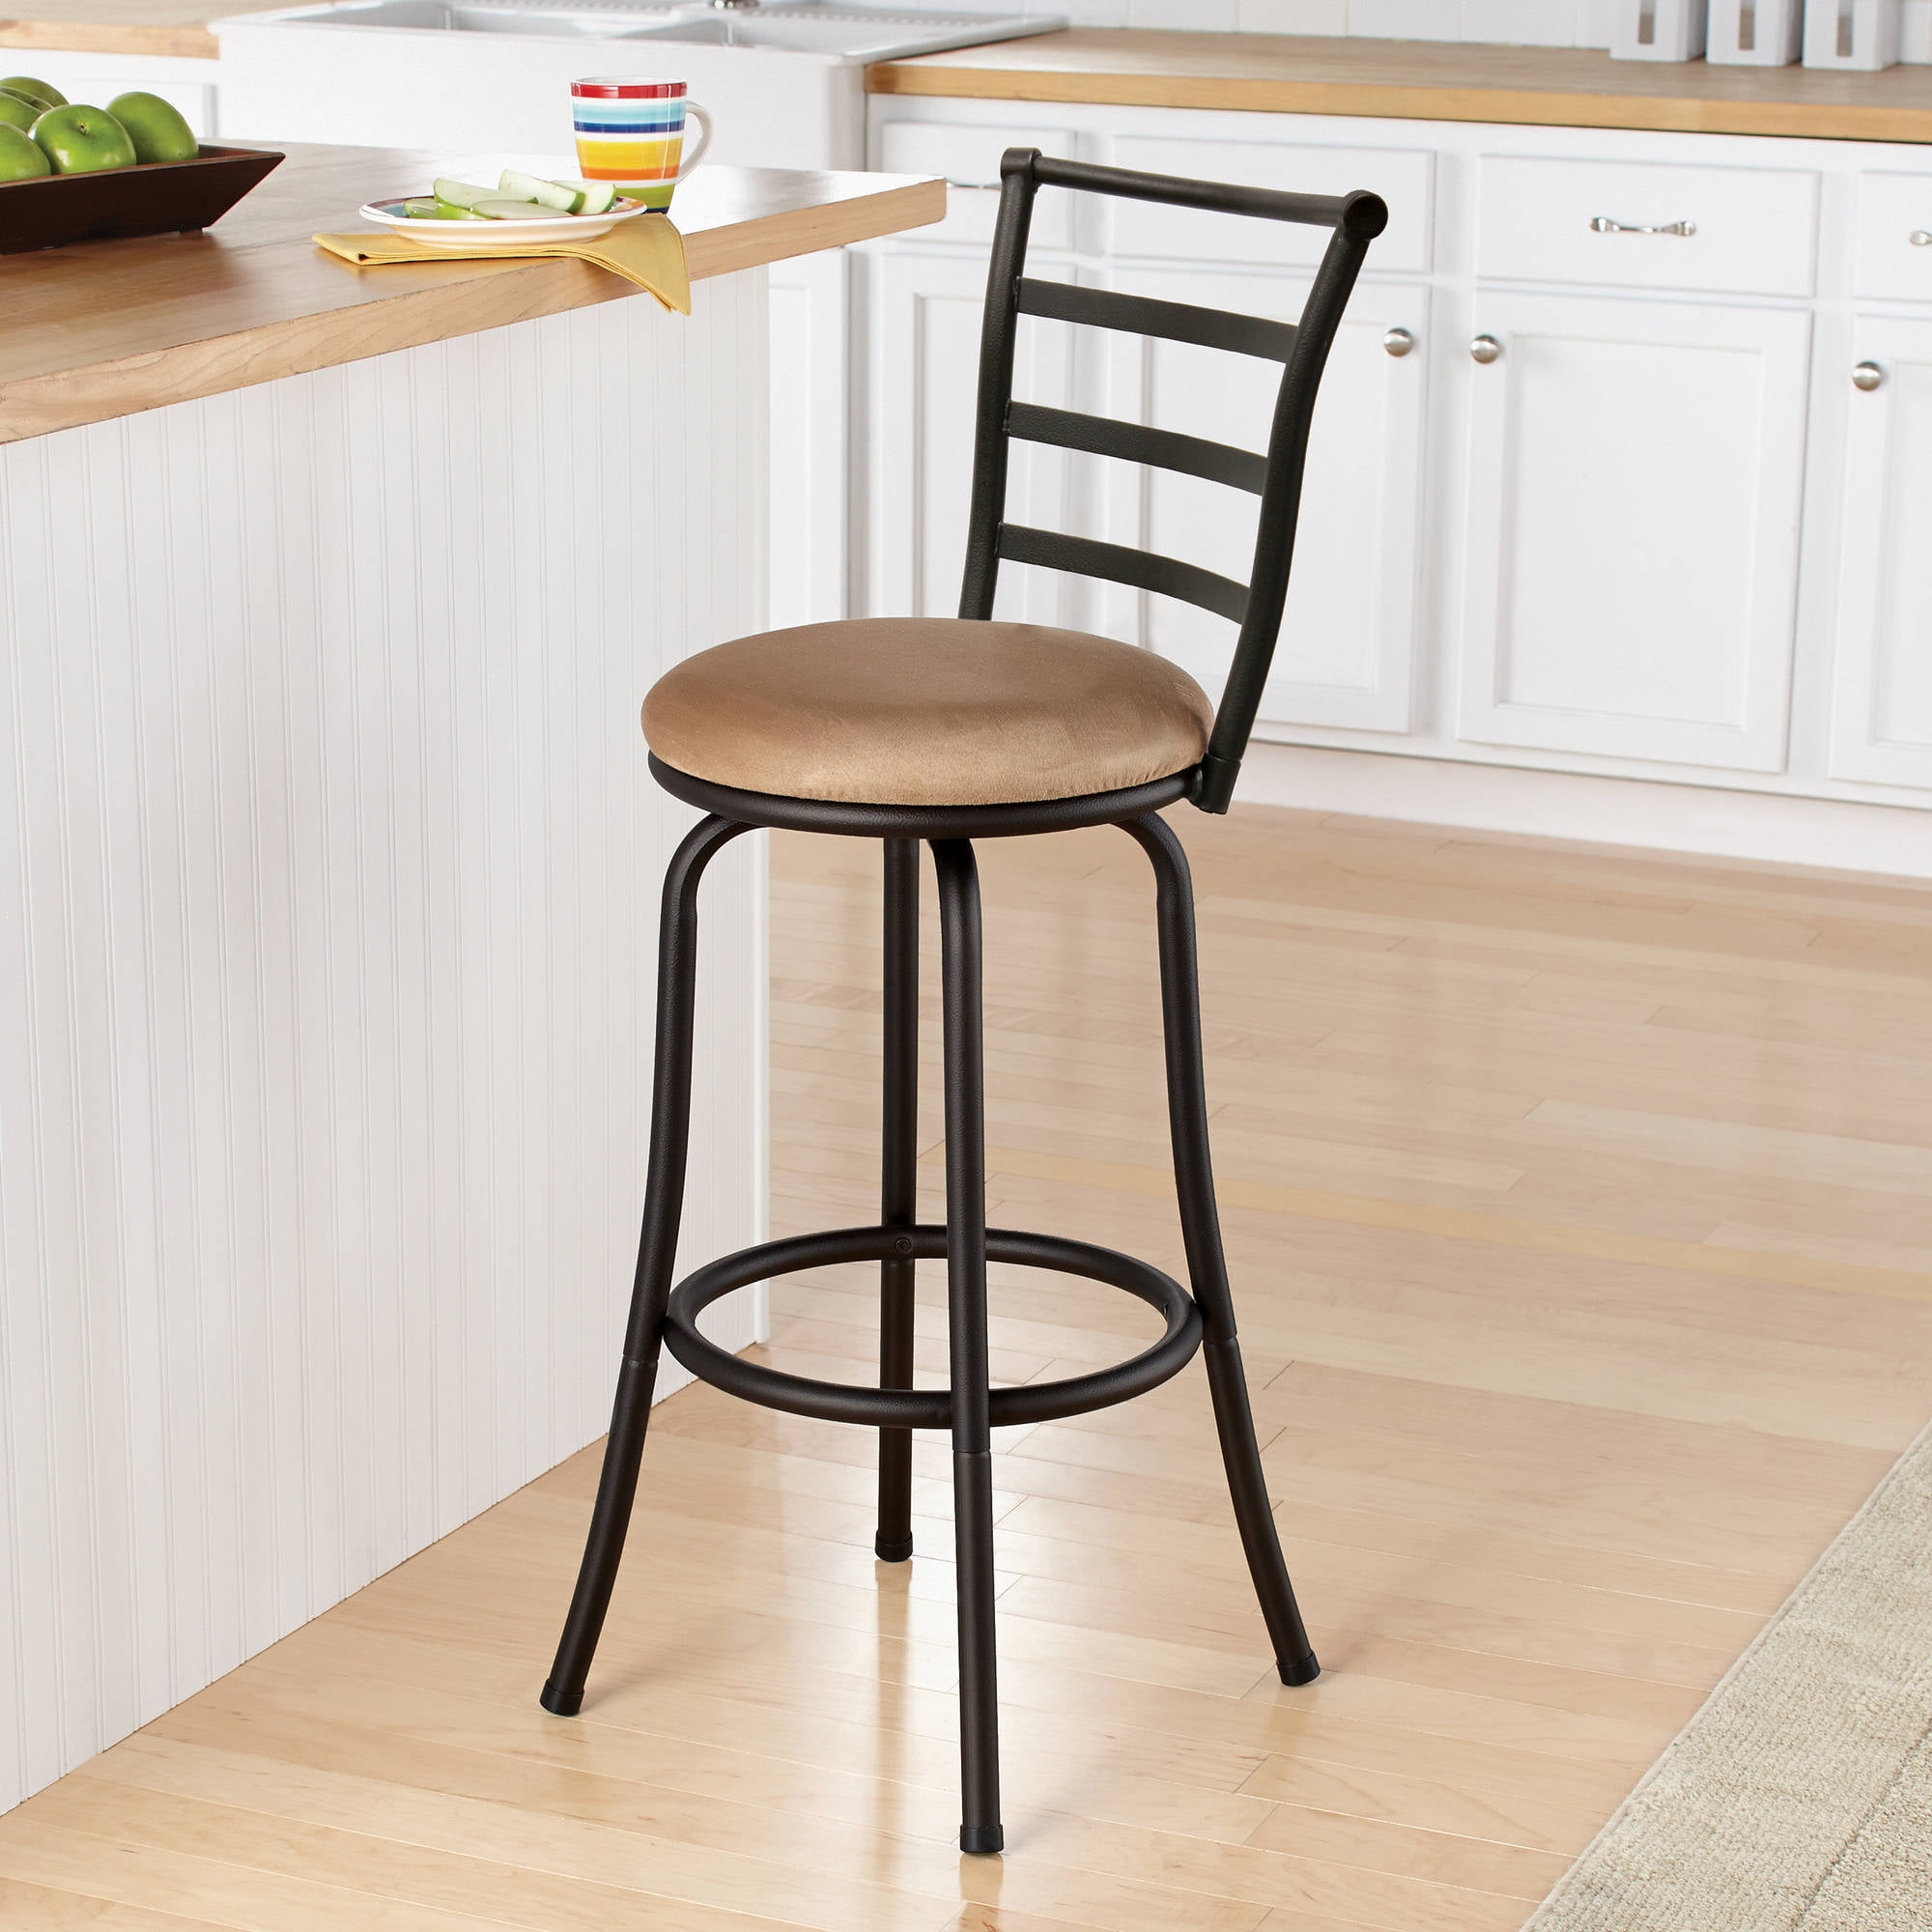 Mainstays Metal Swivel Bar Stool 29 Black Set Of 2 Black